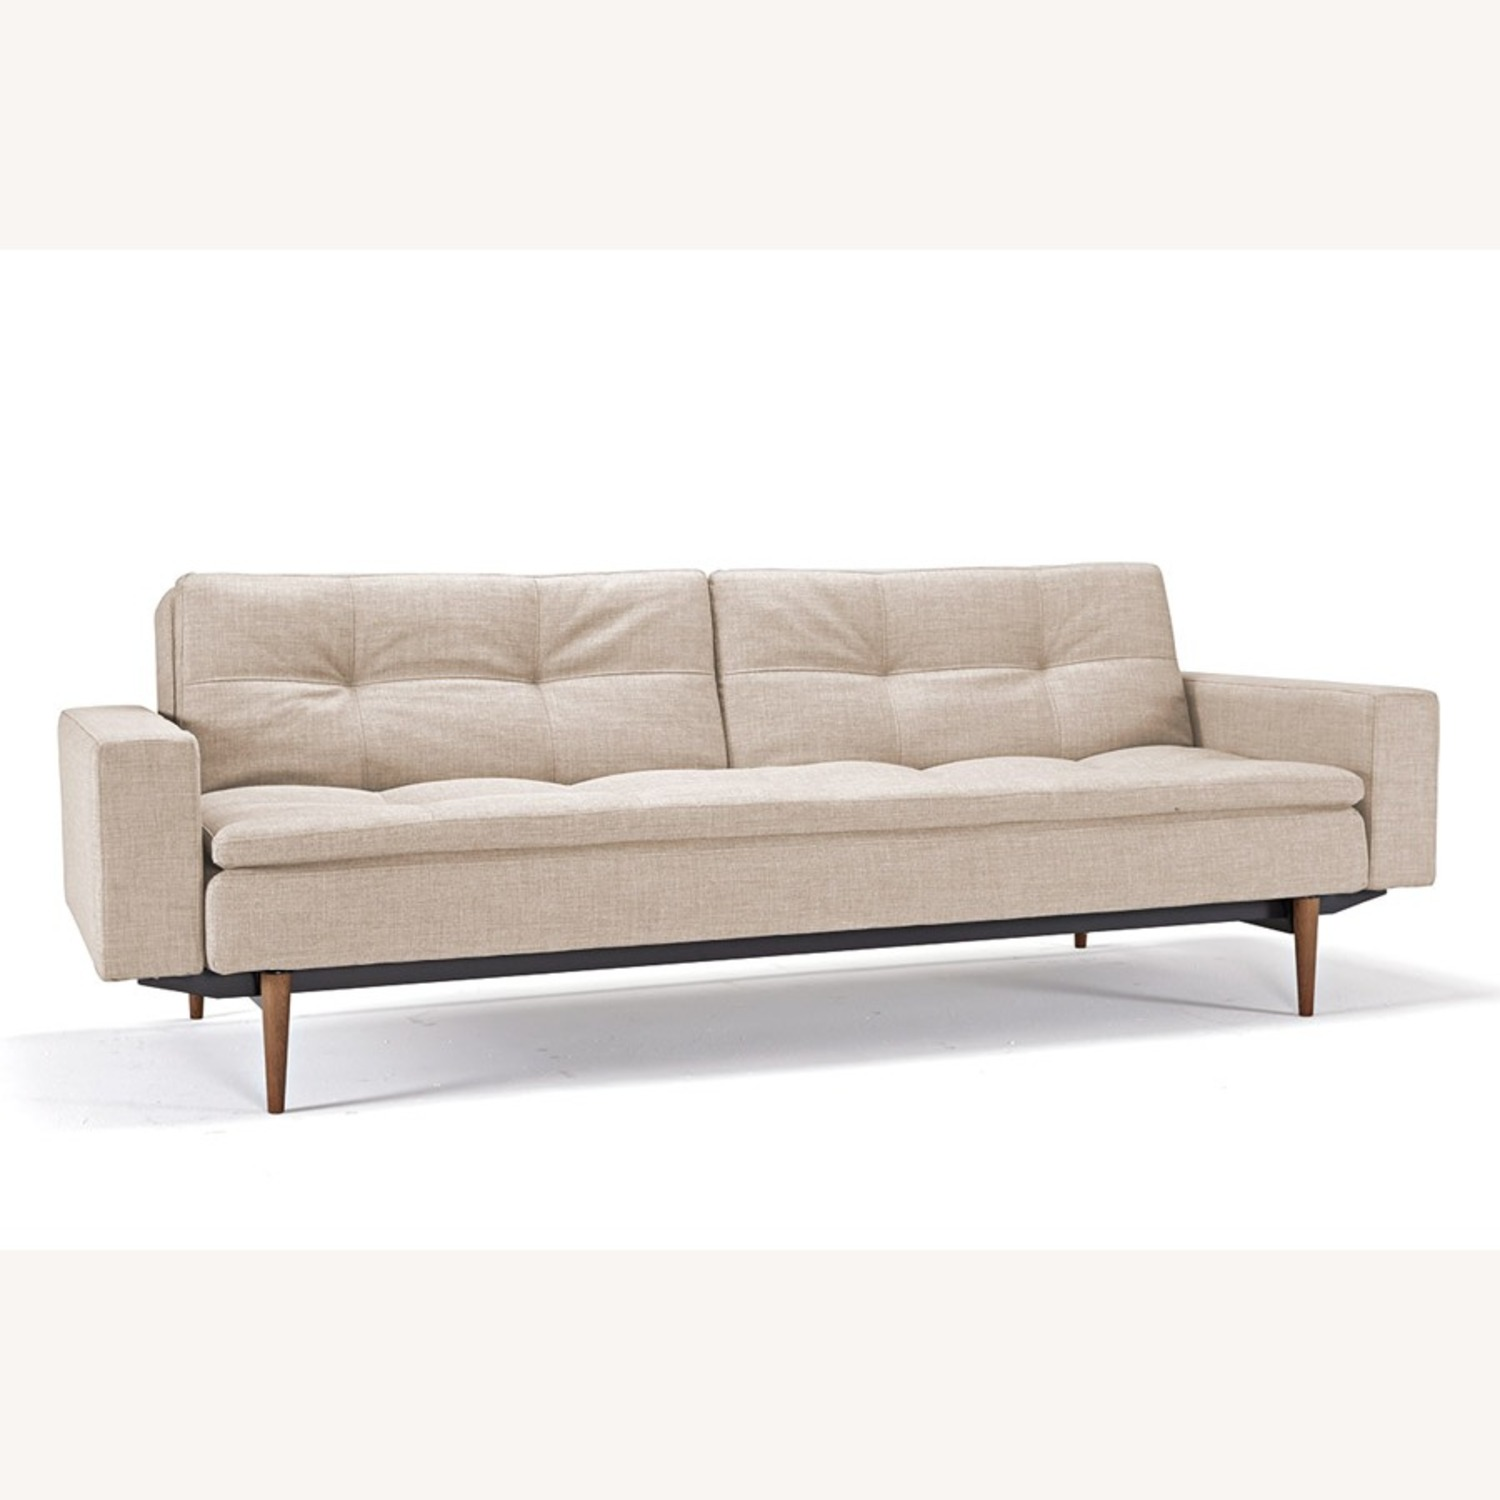 Dublexo Styletto Sofa with Arms - image-1